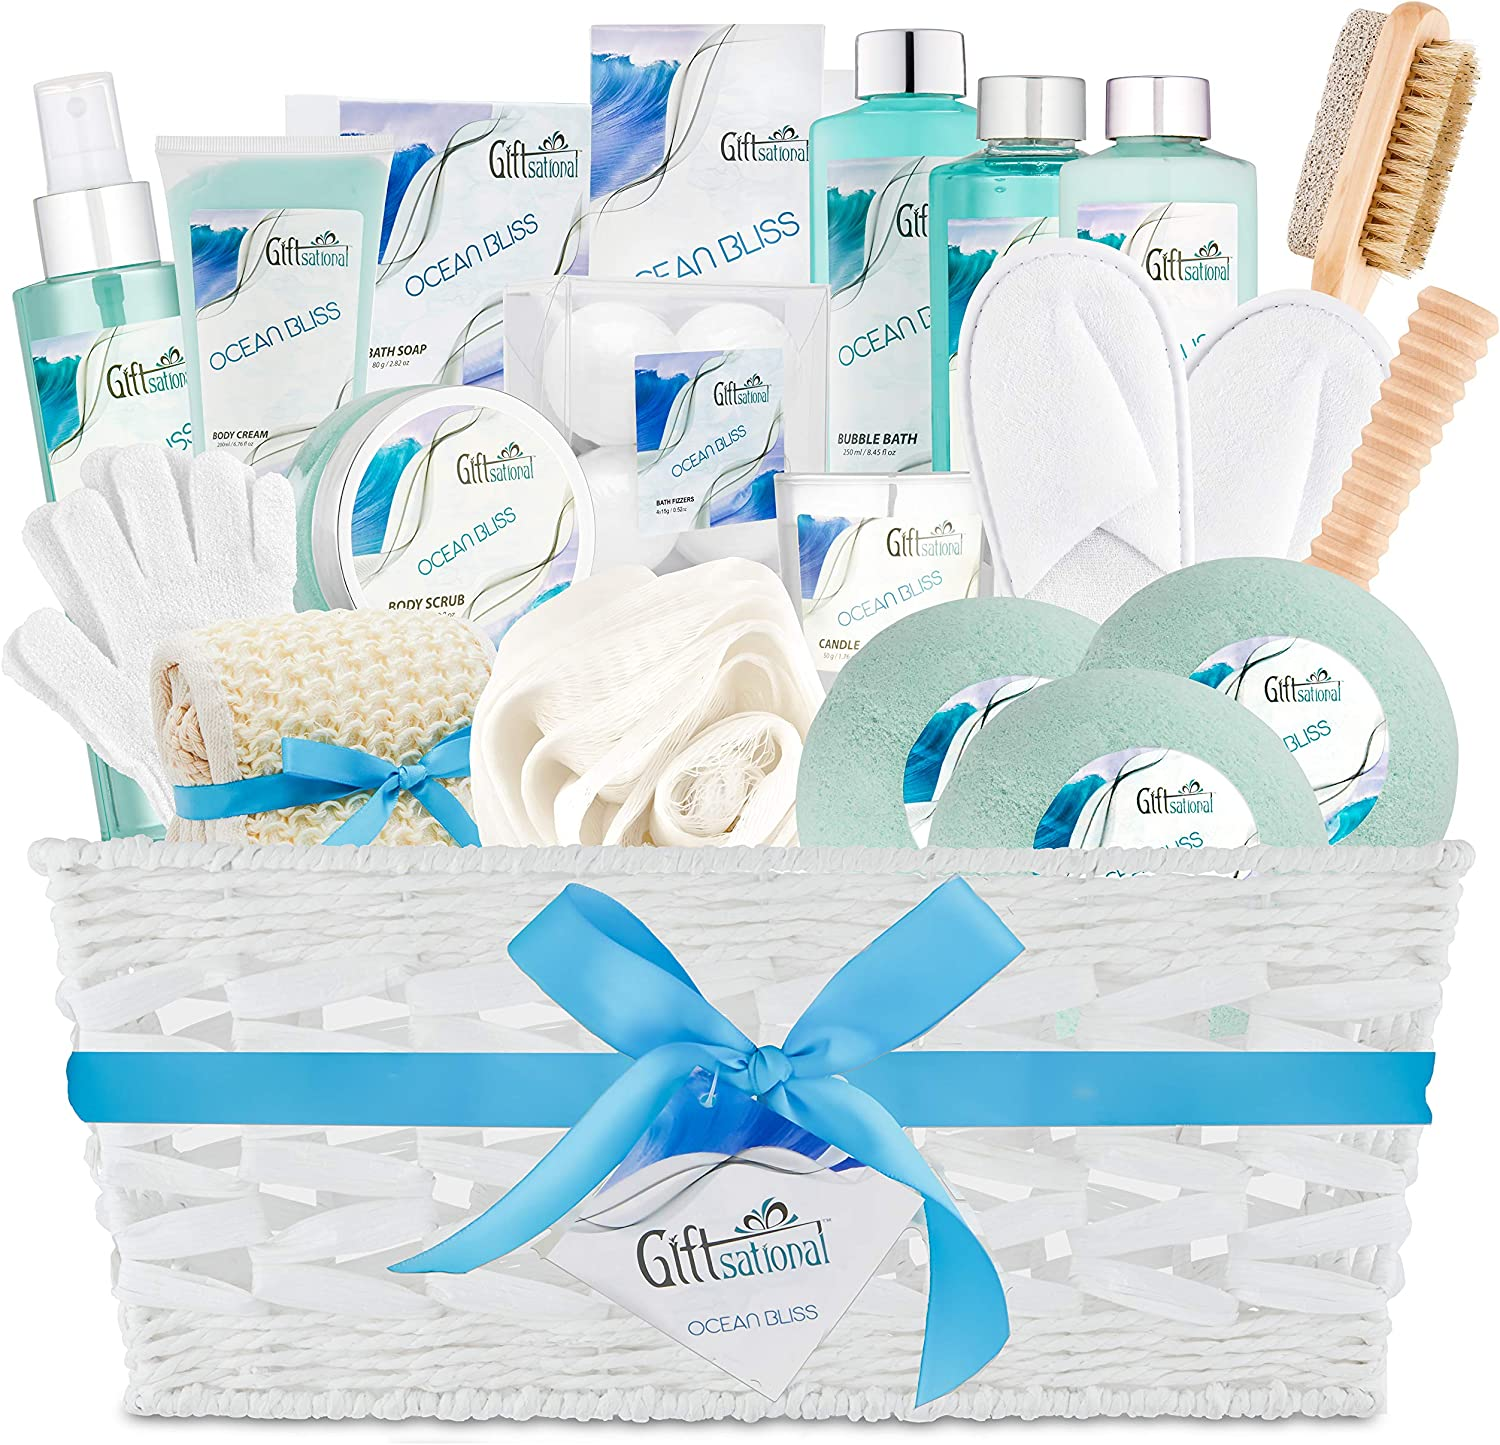 Ocean Bliss Extra Large Spa Bath Gift Basket,Great Christmas Gift, Includes 3 Bath Bombs, Shower Gel, Bubble Bath, Lotion, Scrub, Pumice Brush, Glass Candle, Slippers, Massage Stick & 5 More Items